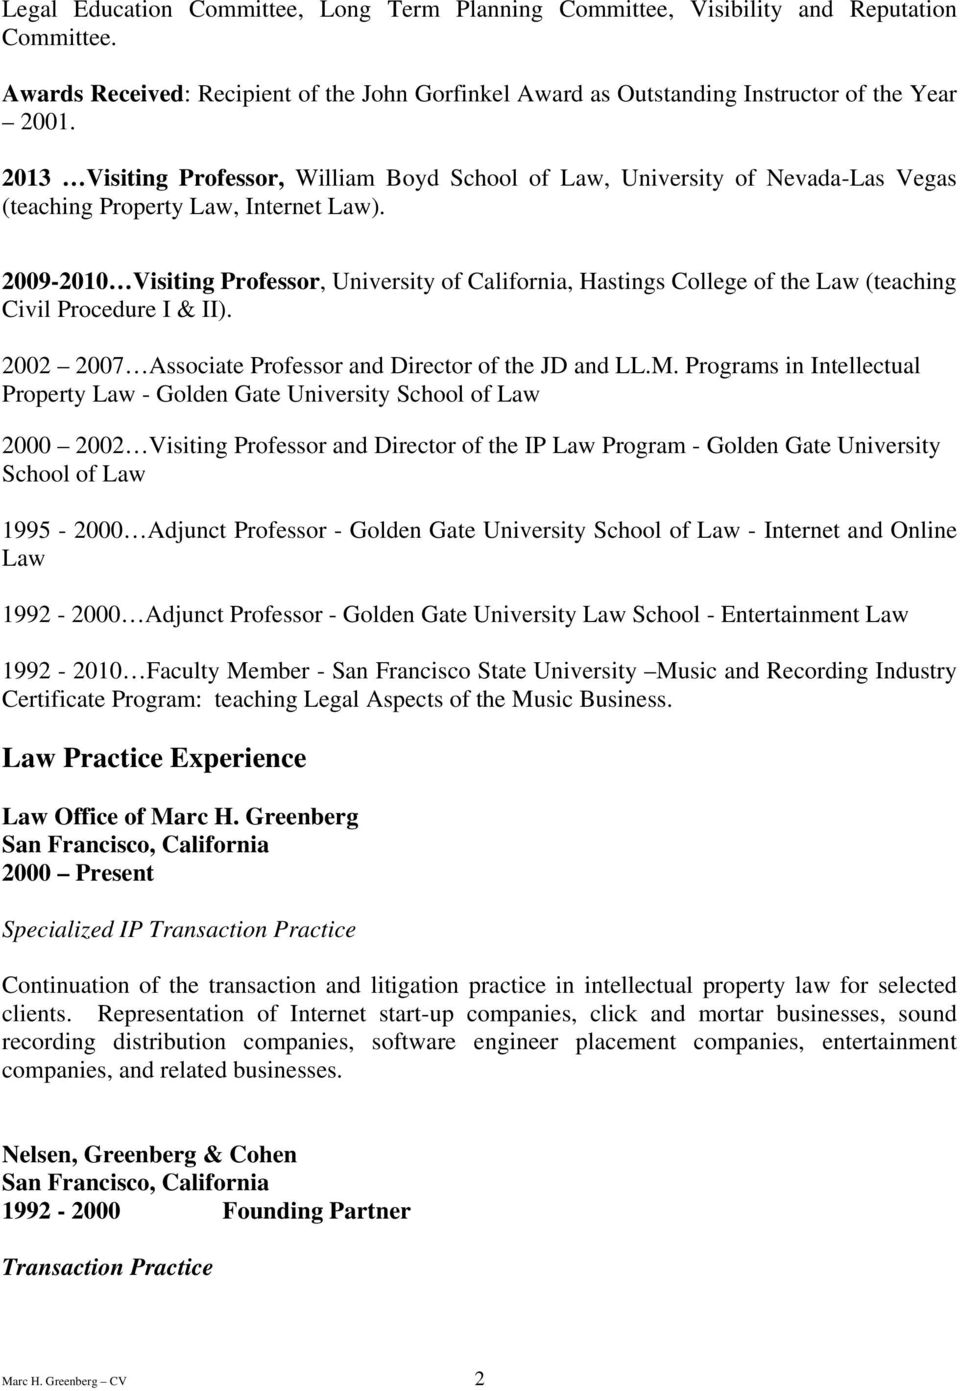 2009-2010 Visiting Professor, University of California, Hastings College of the Law (teaching Civil Procedure I & II). 2002 2007 Associate Professor and Director of the JD and LL.M.